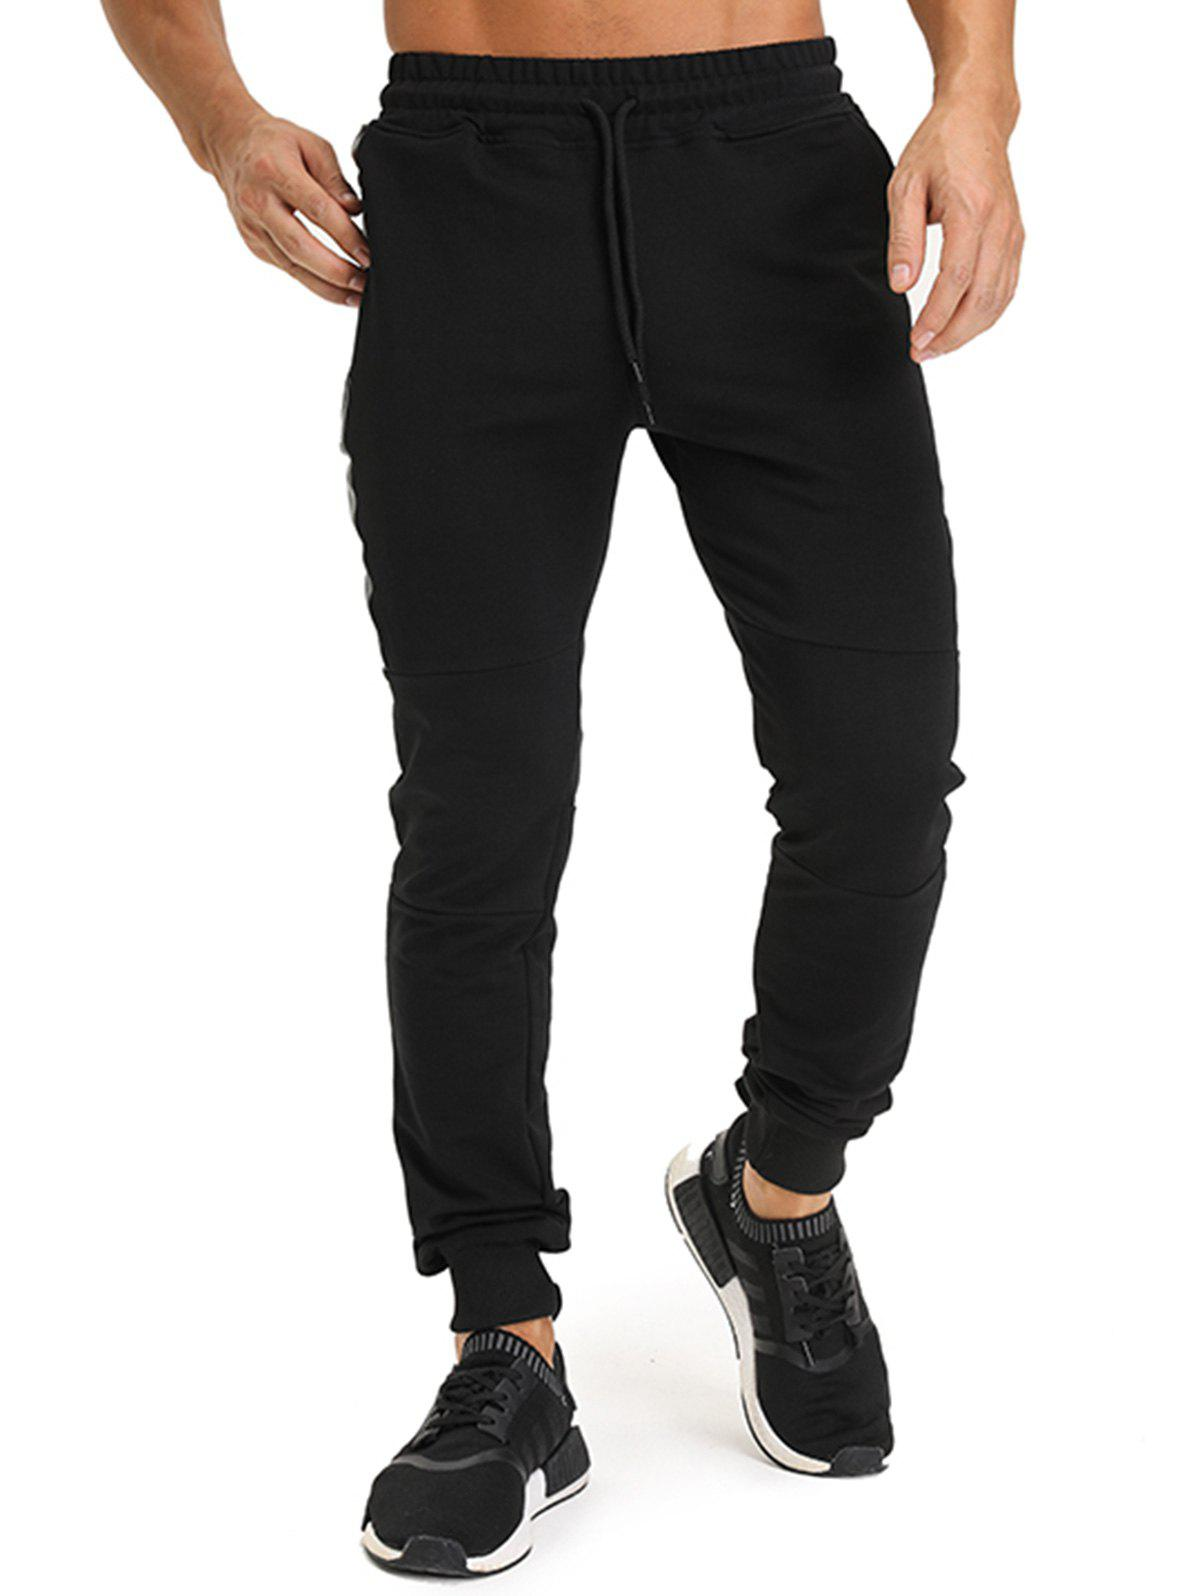 PU Leather Edging Zip Pockets Jogger PantsMEN<br><br>Size: 2XL; Color: BLACK; Type: Pants; Material: Cotton,Polyester; Pattern Type: Solid; Weight: 0.4200kg; Package Contents: 1 x Pants;